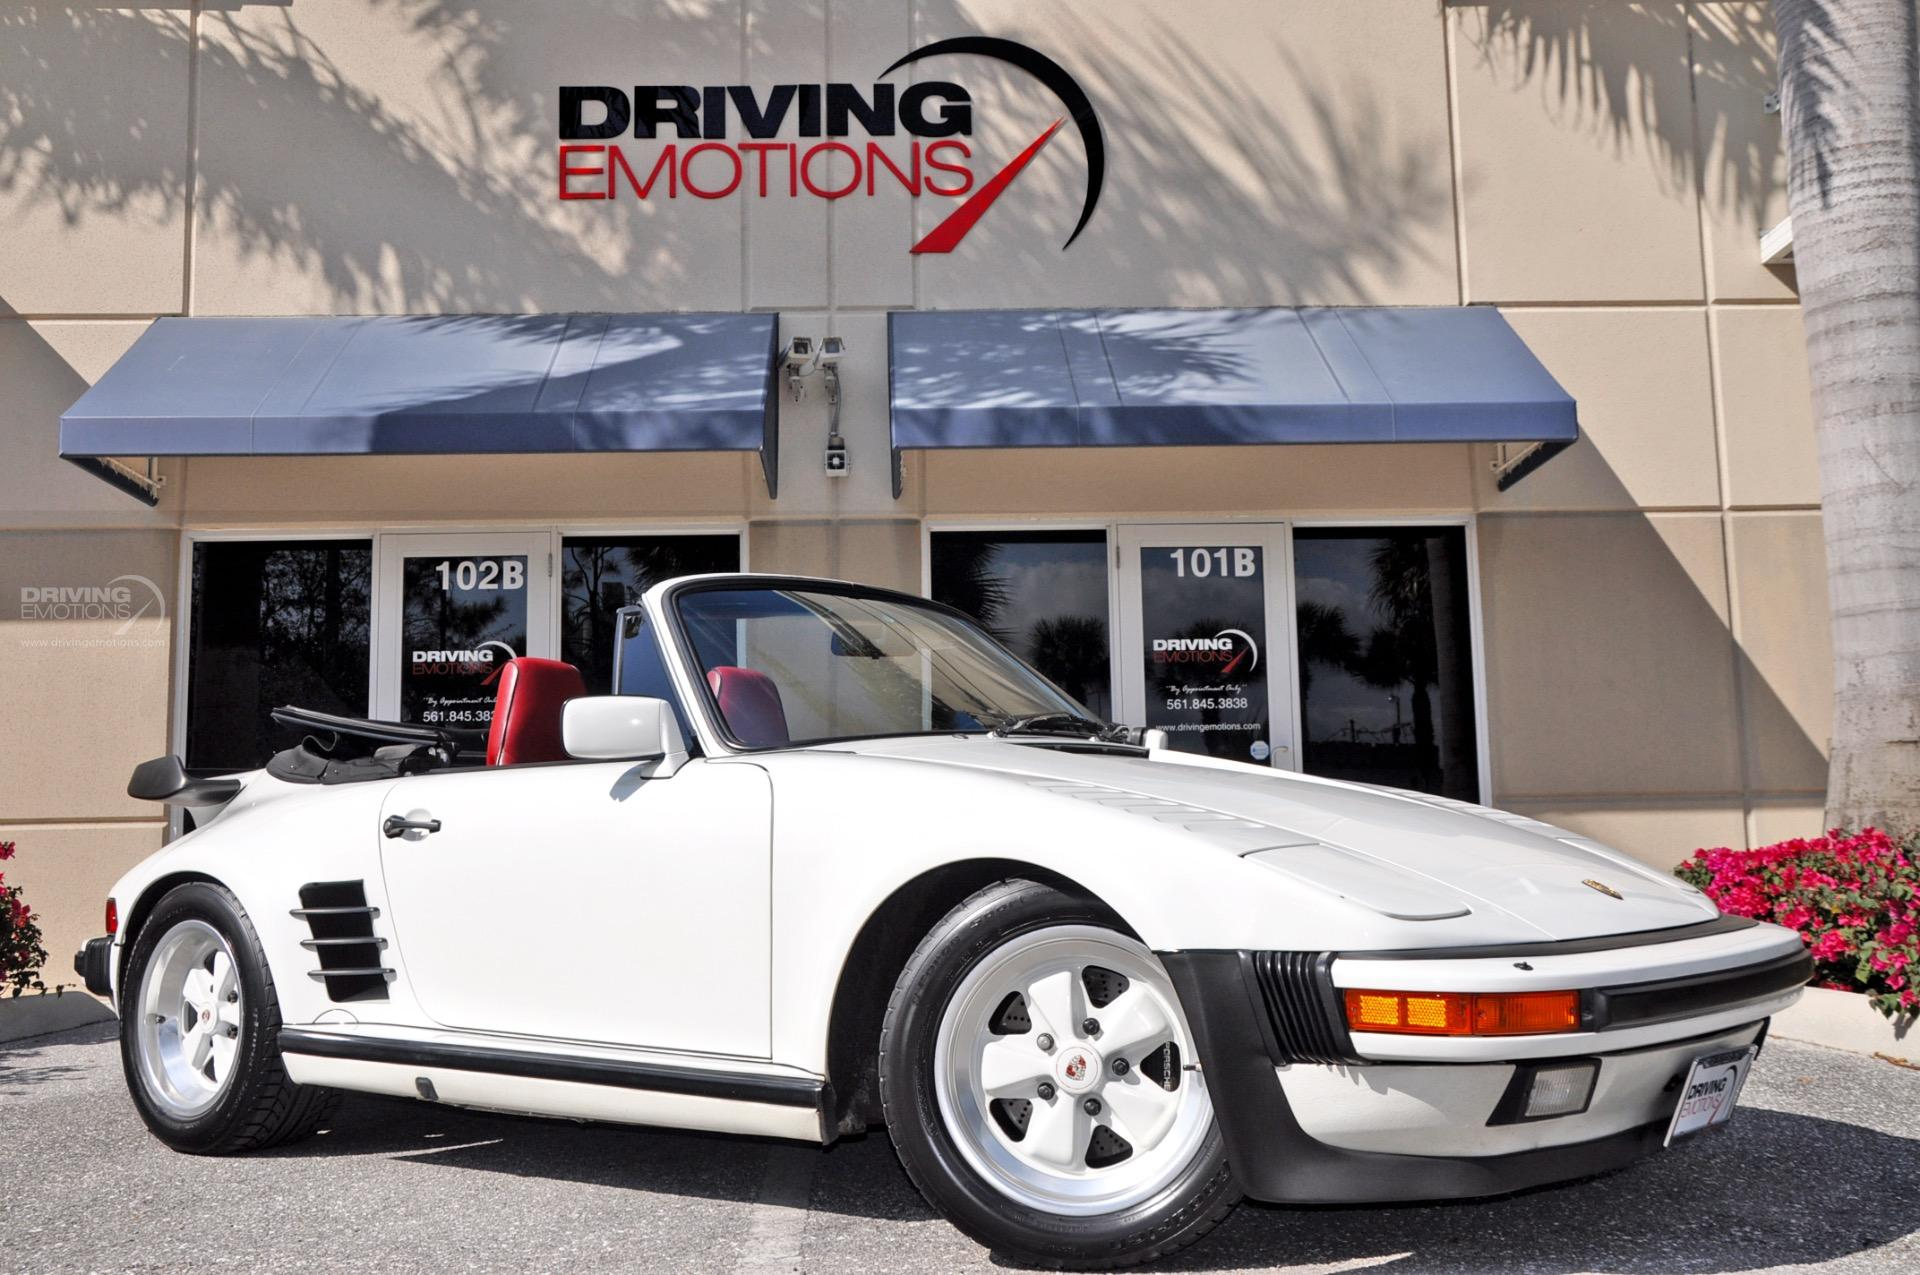 1987 Porsche 911 930 Turbo Cabriolet Slant Nose Carrera Turbo Slant Nose Stock 5751 For Sale Near Lake Park Fl Fl Porsche Dealer